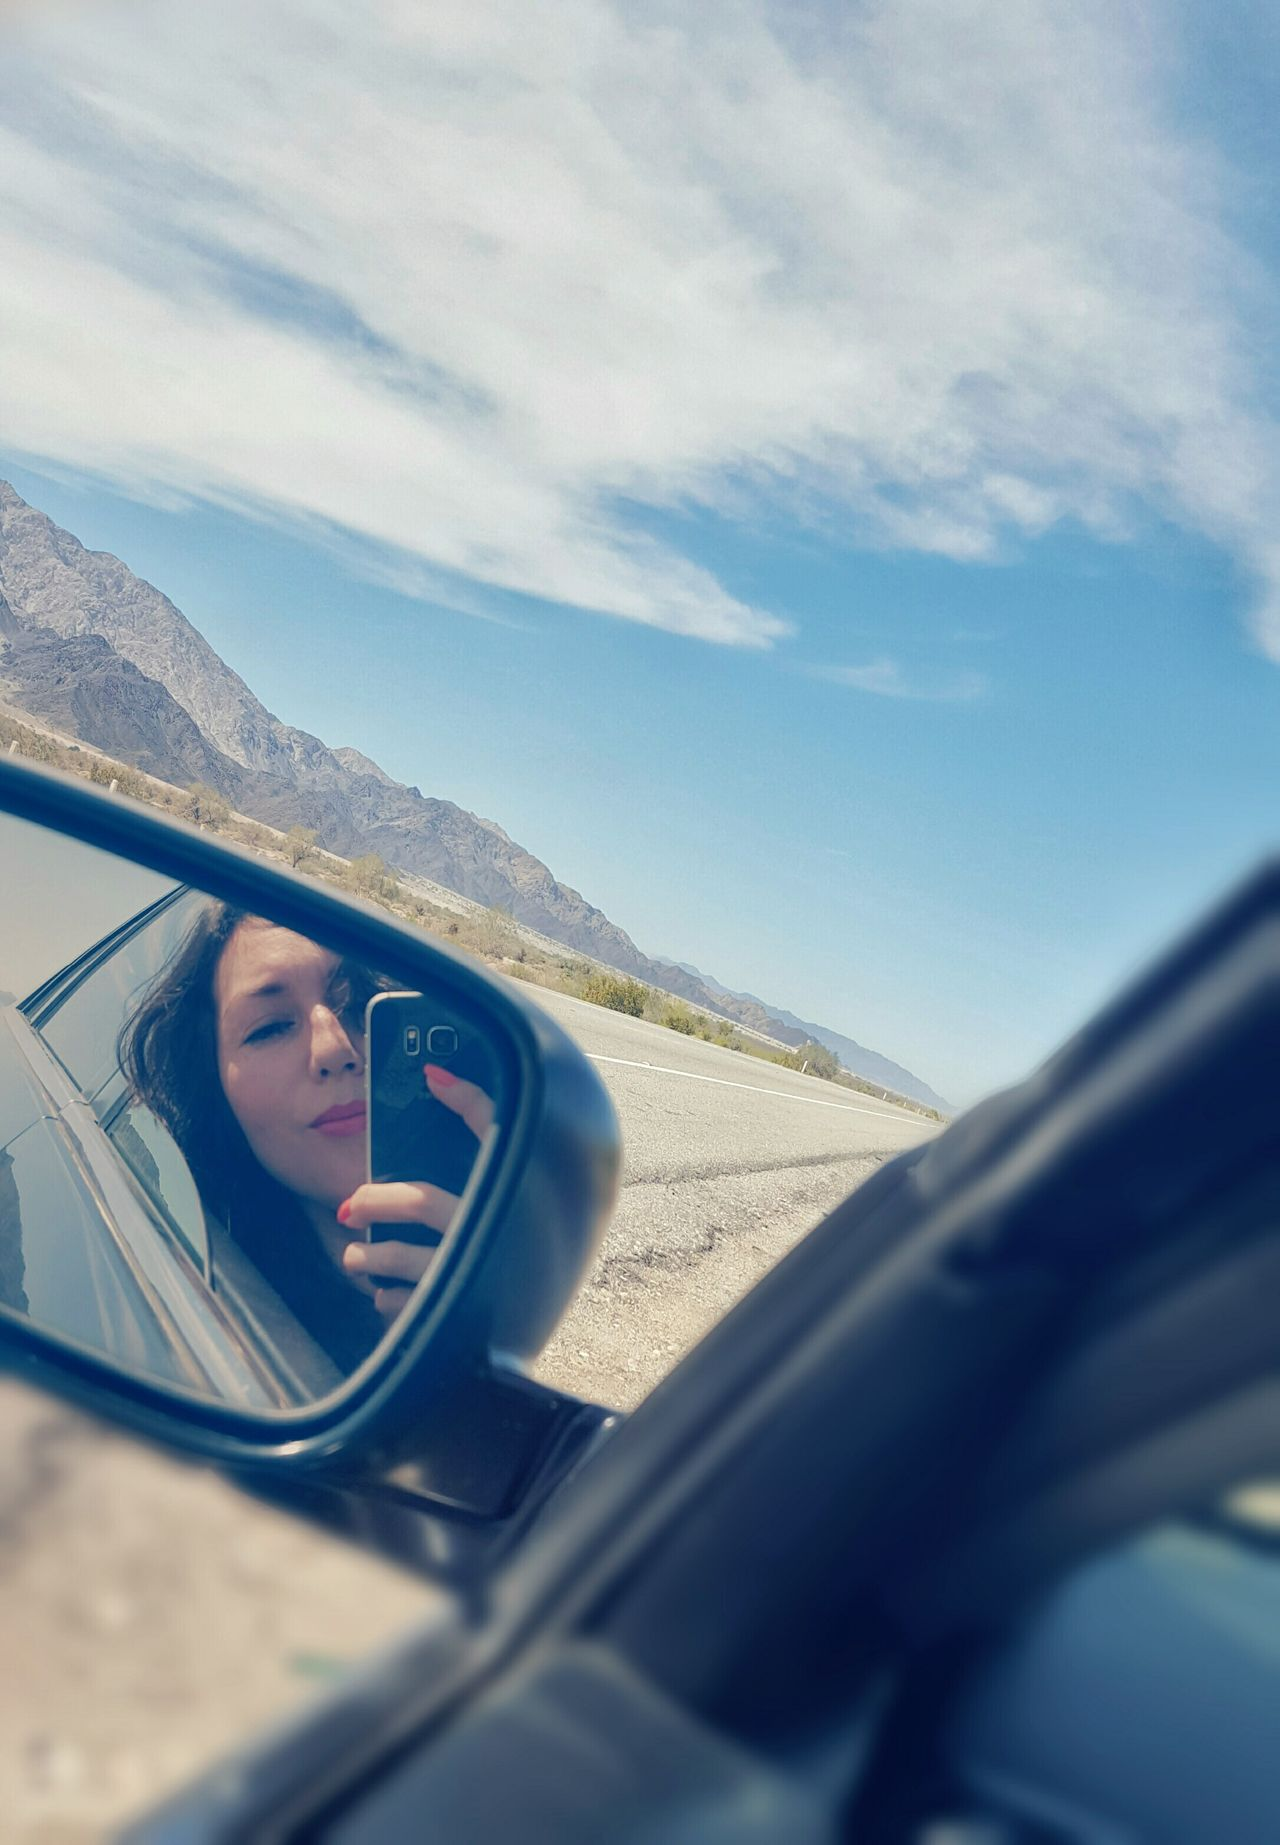 🤗 Car Vehicle Mirror Ontheroad Driving Vehicle Interior Day Mode Of Transport One Person Front View Cloud - Sky On The Move Transportation Captured Moment Selfie Windshield EyeEm Mirror Road Trip Landscape On The Road Mexico Eyeemphotography EyeEm Gallery Road Side-view Mirror